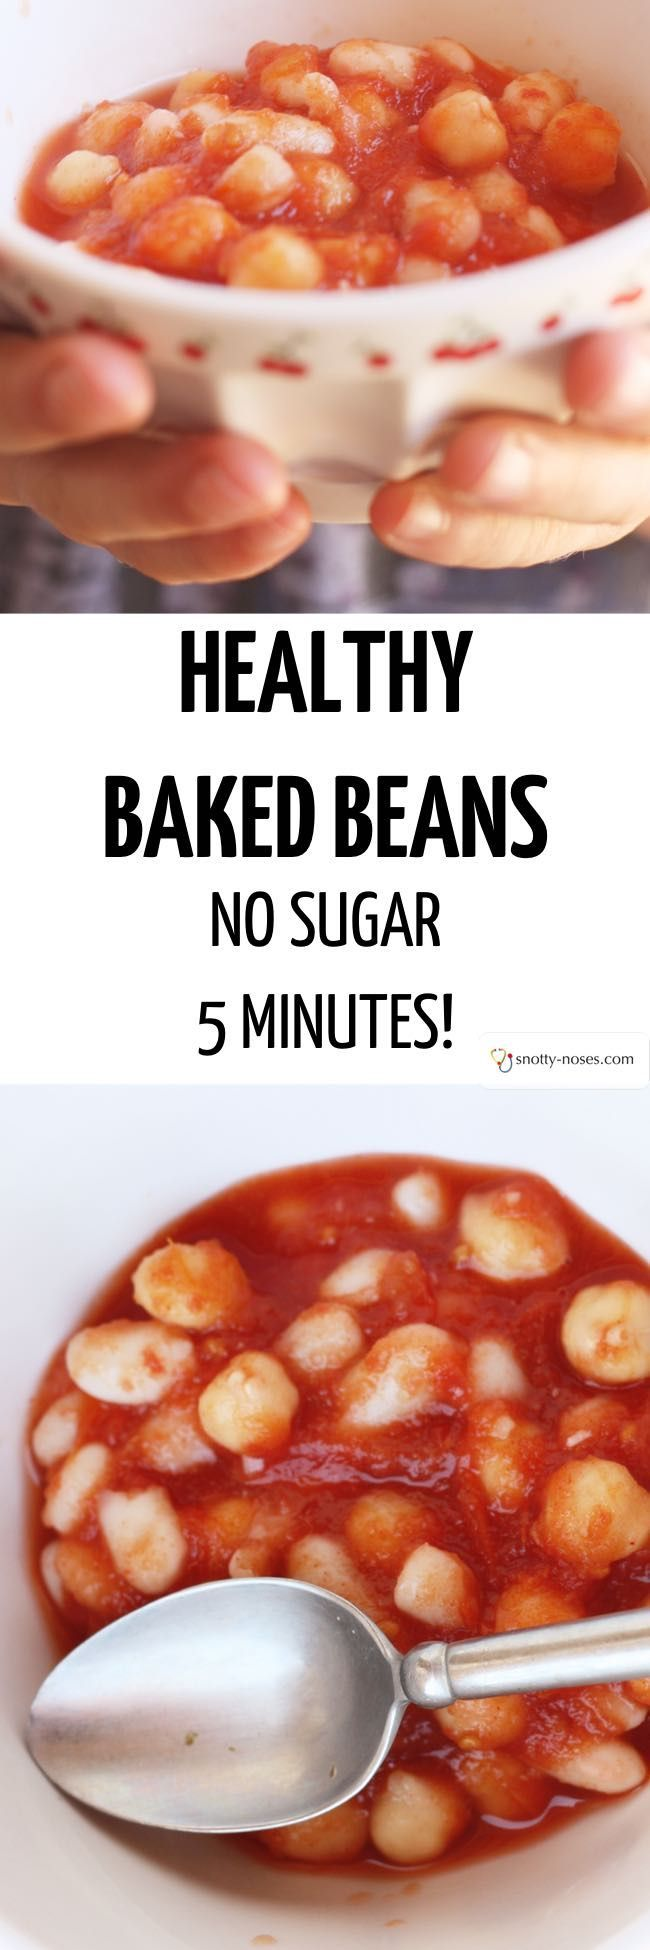 Healthy Baked Beans No Sugar. | Yummy Dinner Recipes ...